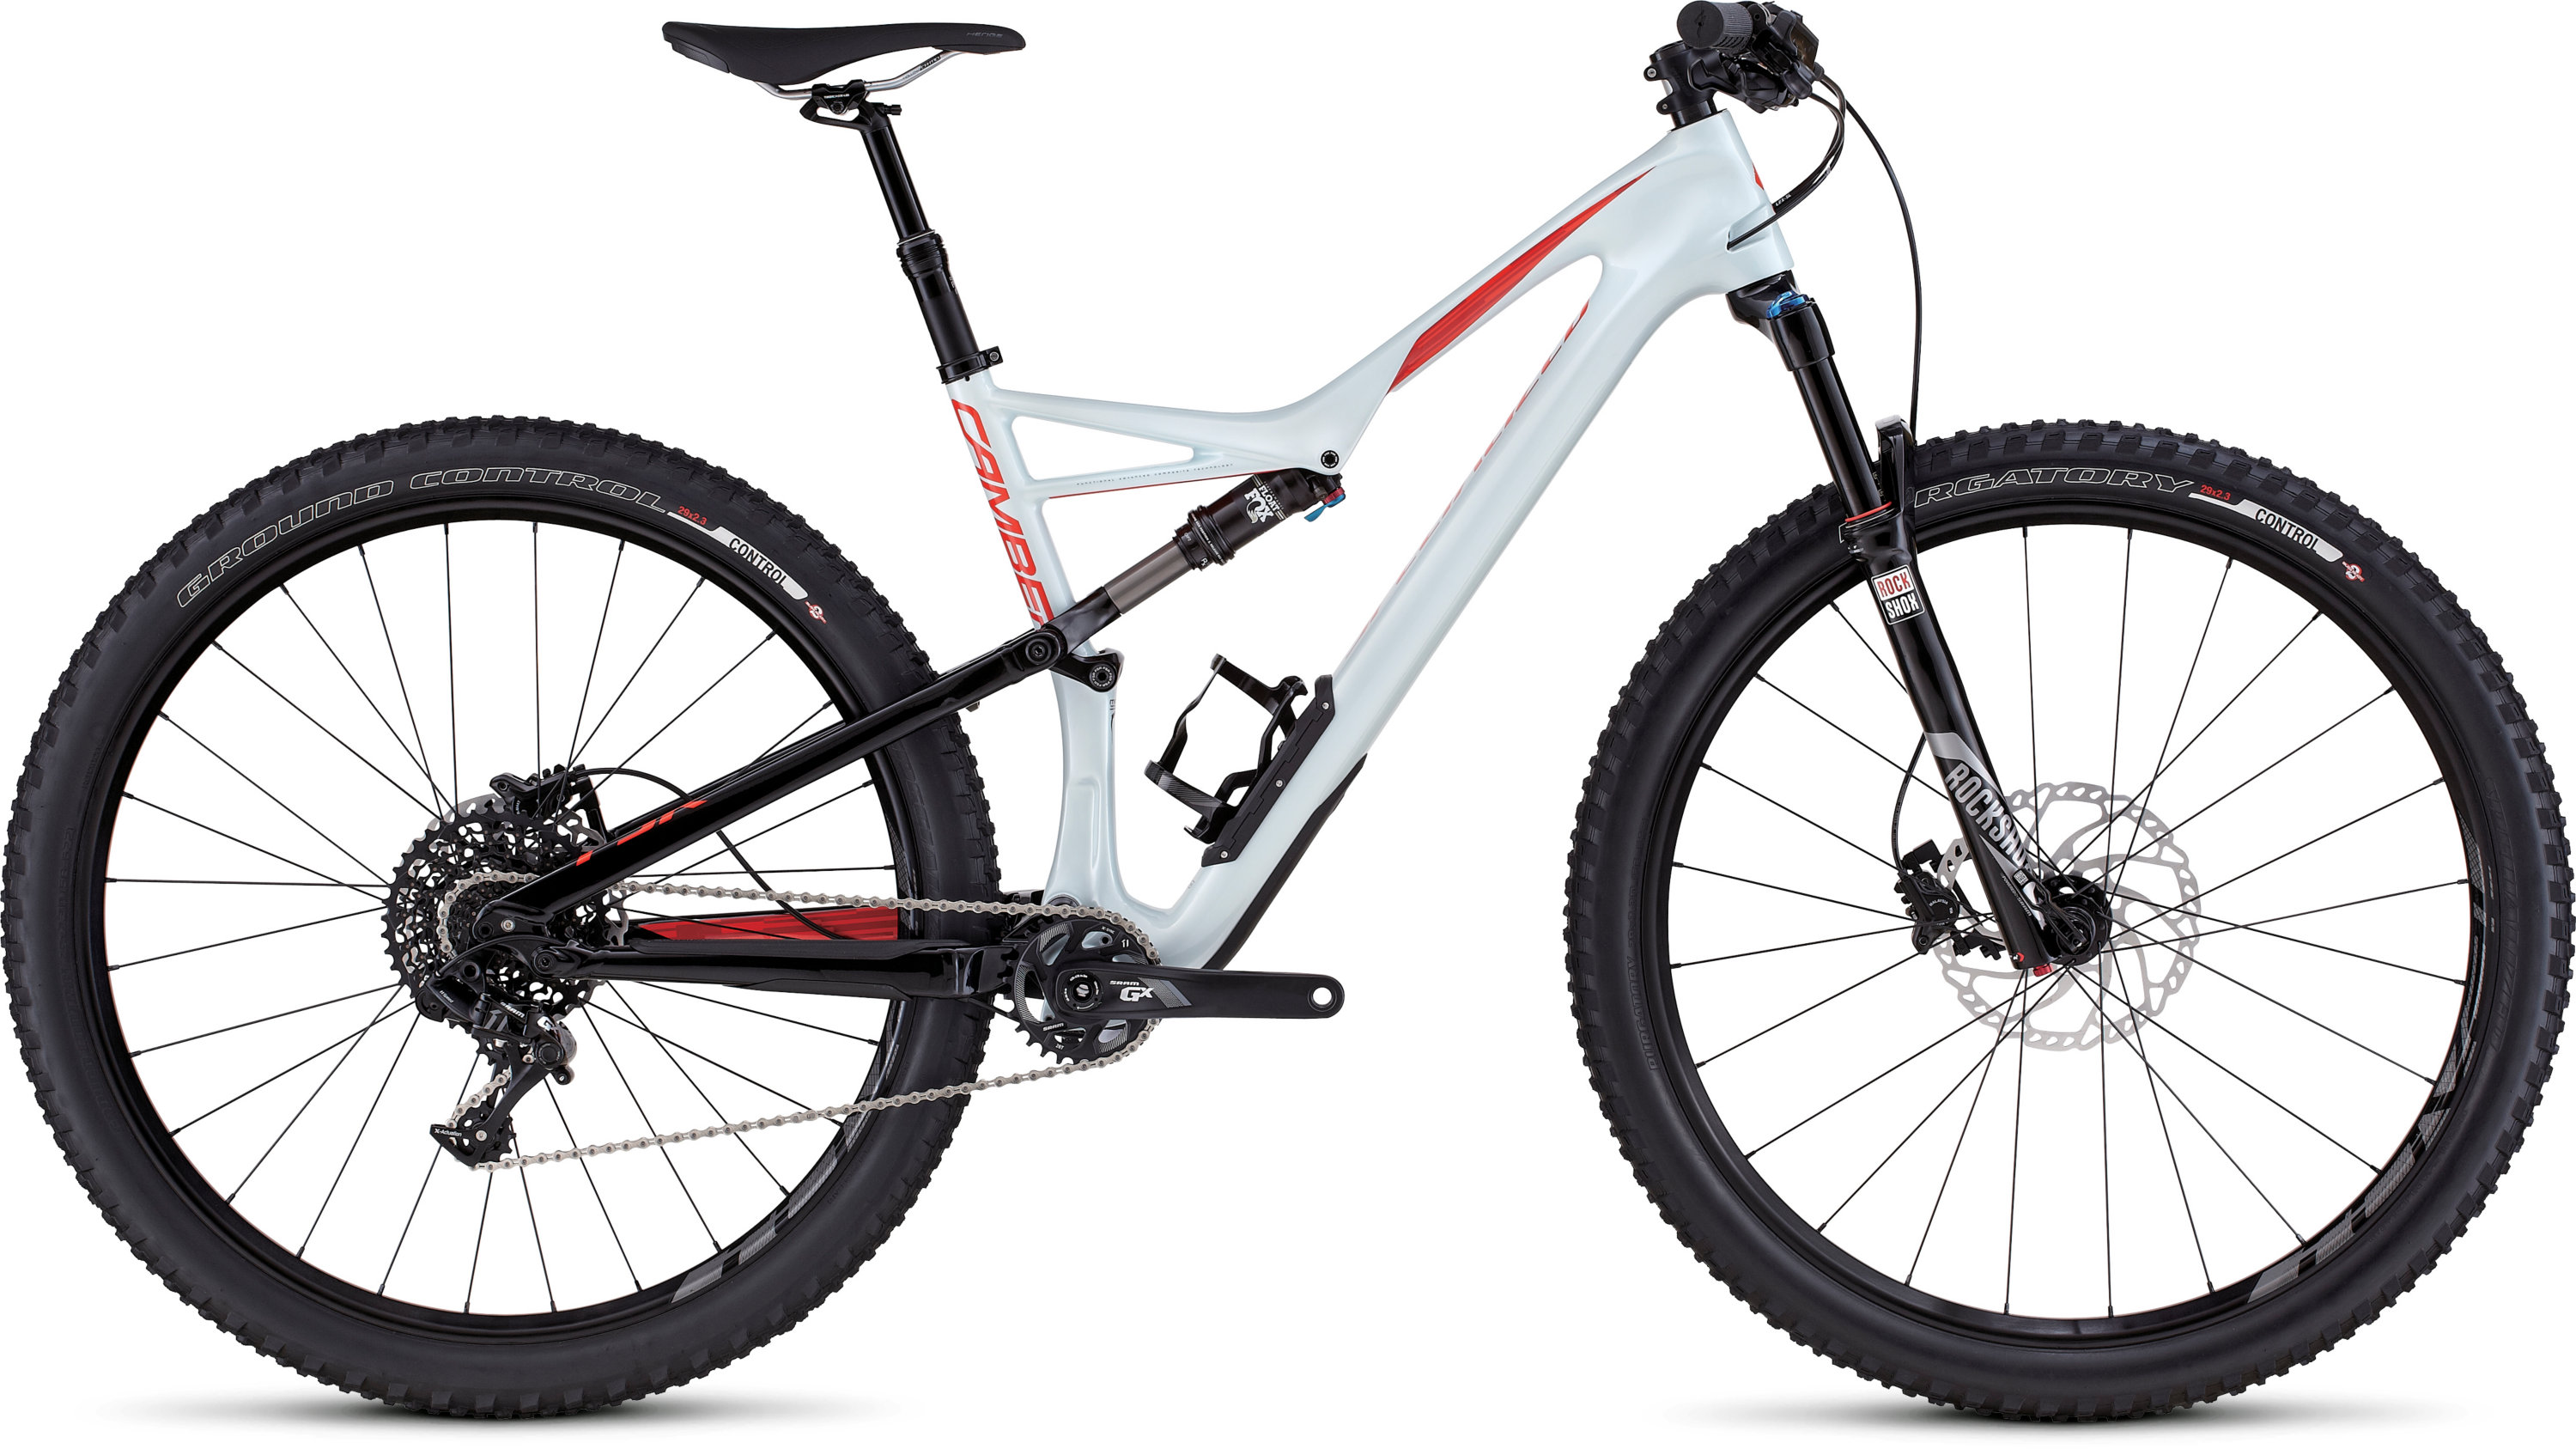 SPECIALIZED CAMBER FSR COMP CARBON 29 BBYBLU/RKTRED S - Bikedreams & Dustbikes